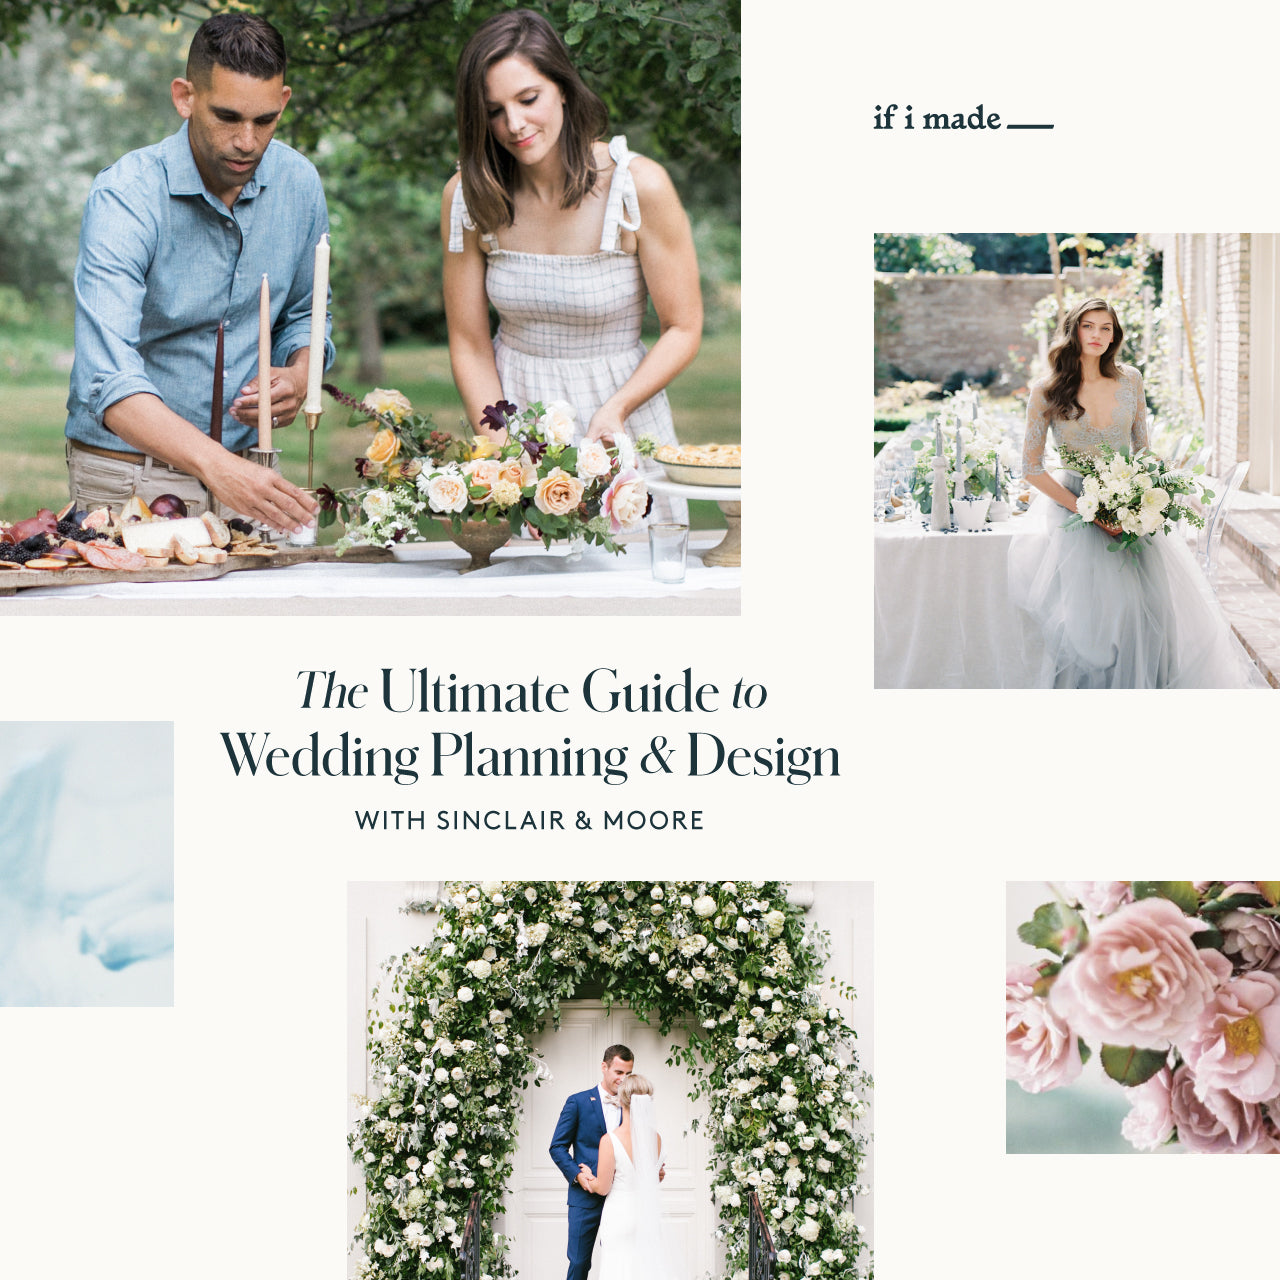 The Ultimate Guide to Wedding Planning & Design with Sinclair & Moore (SOP0321)